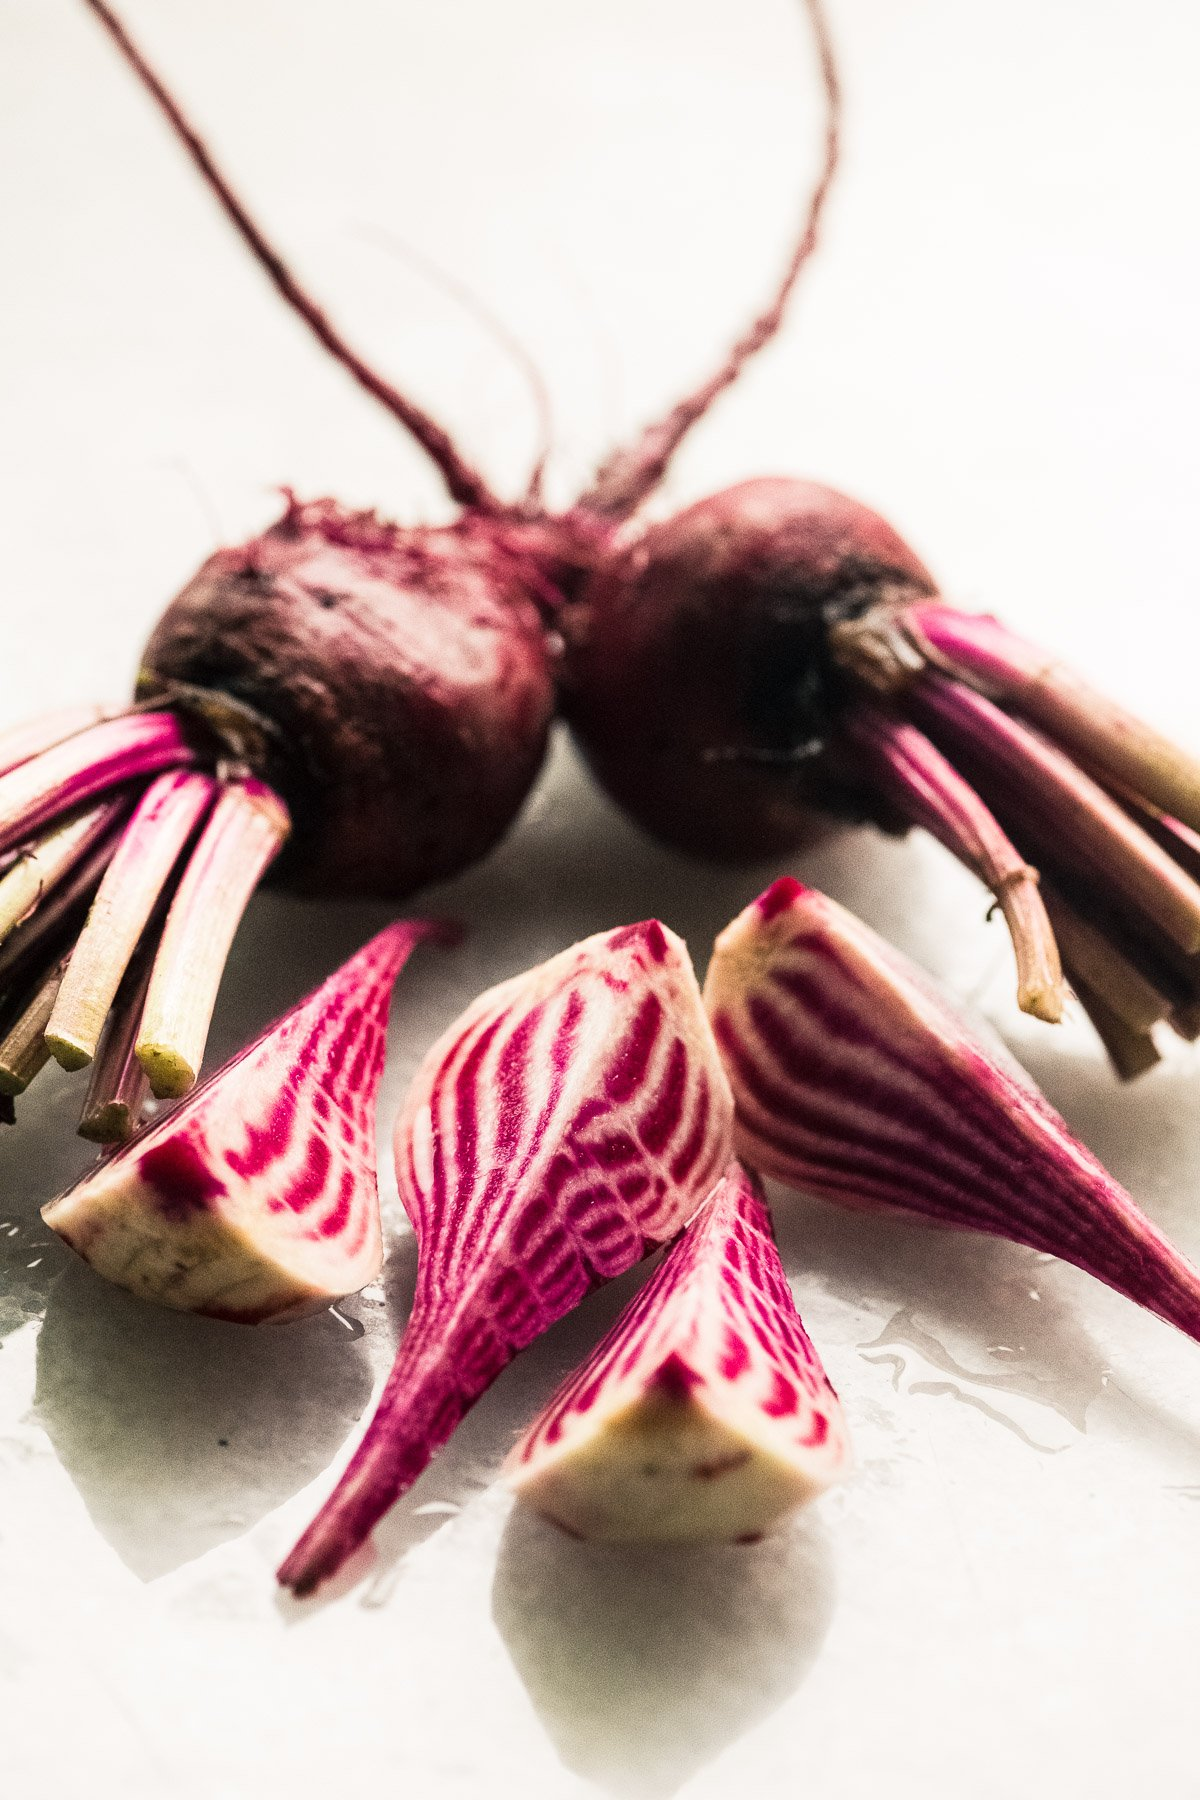 Pretty pink and white Chioggia beets